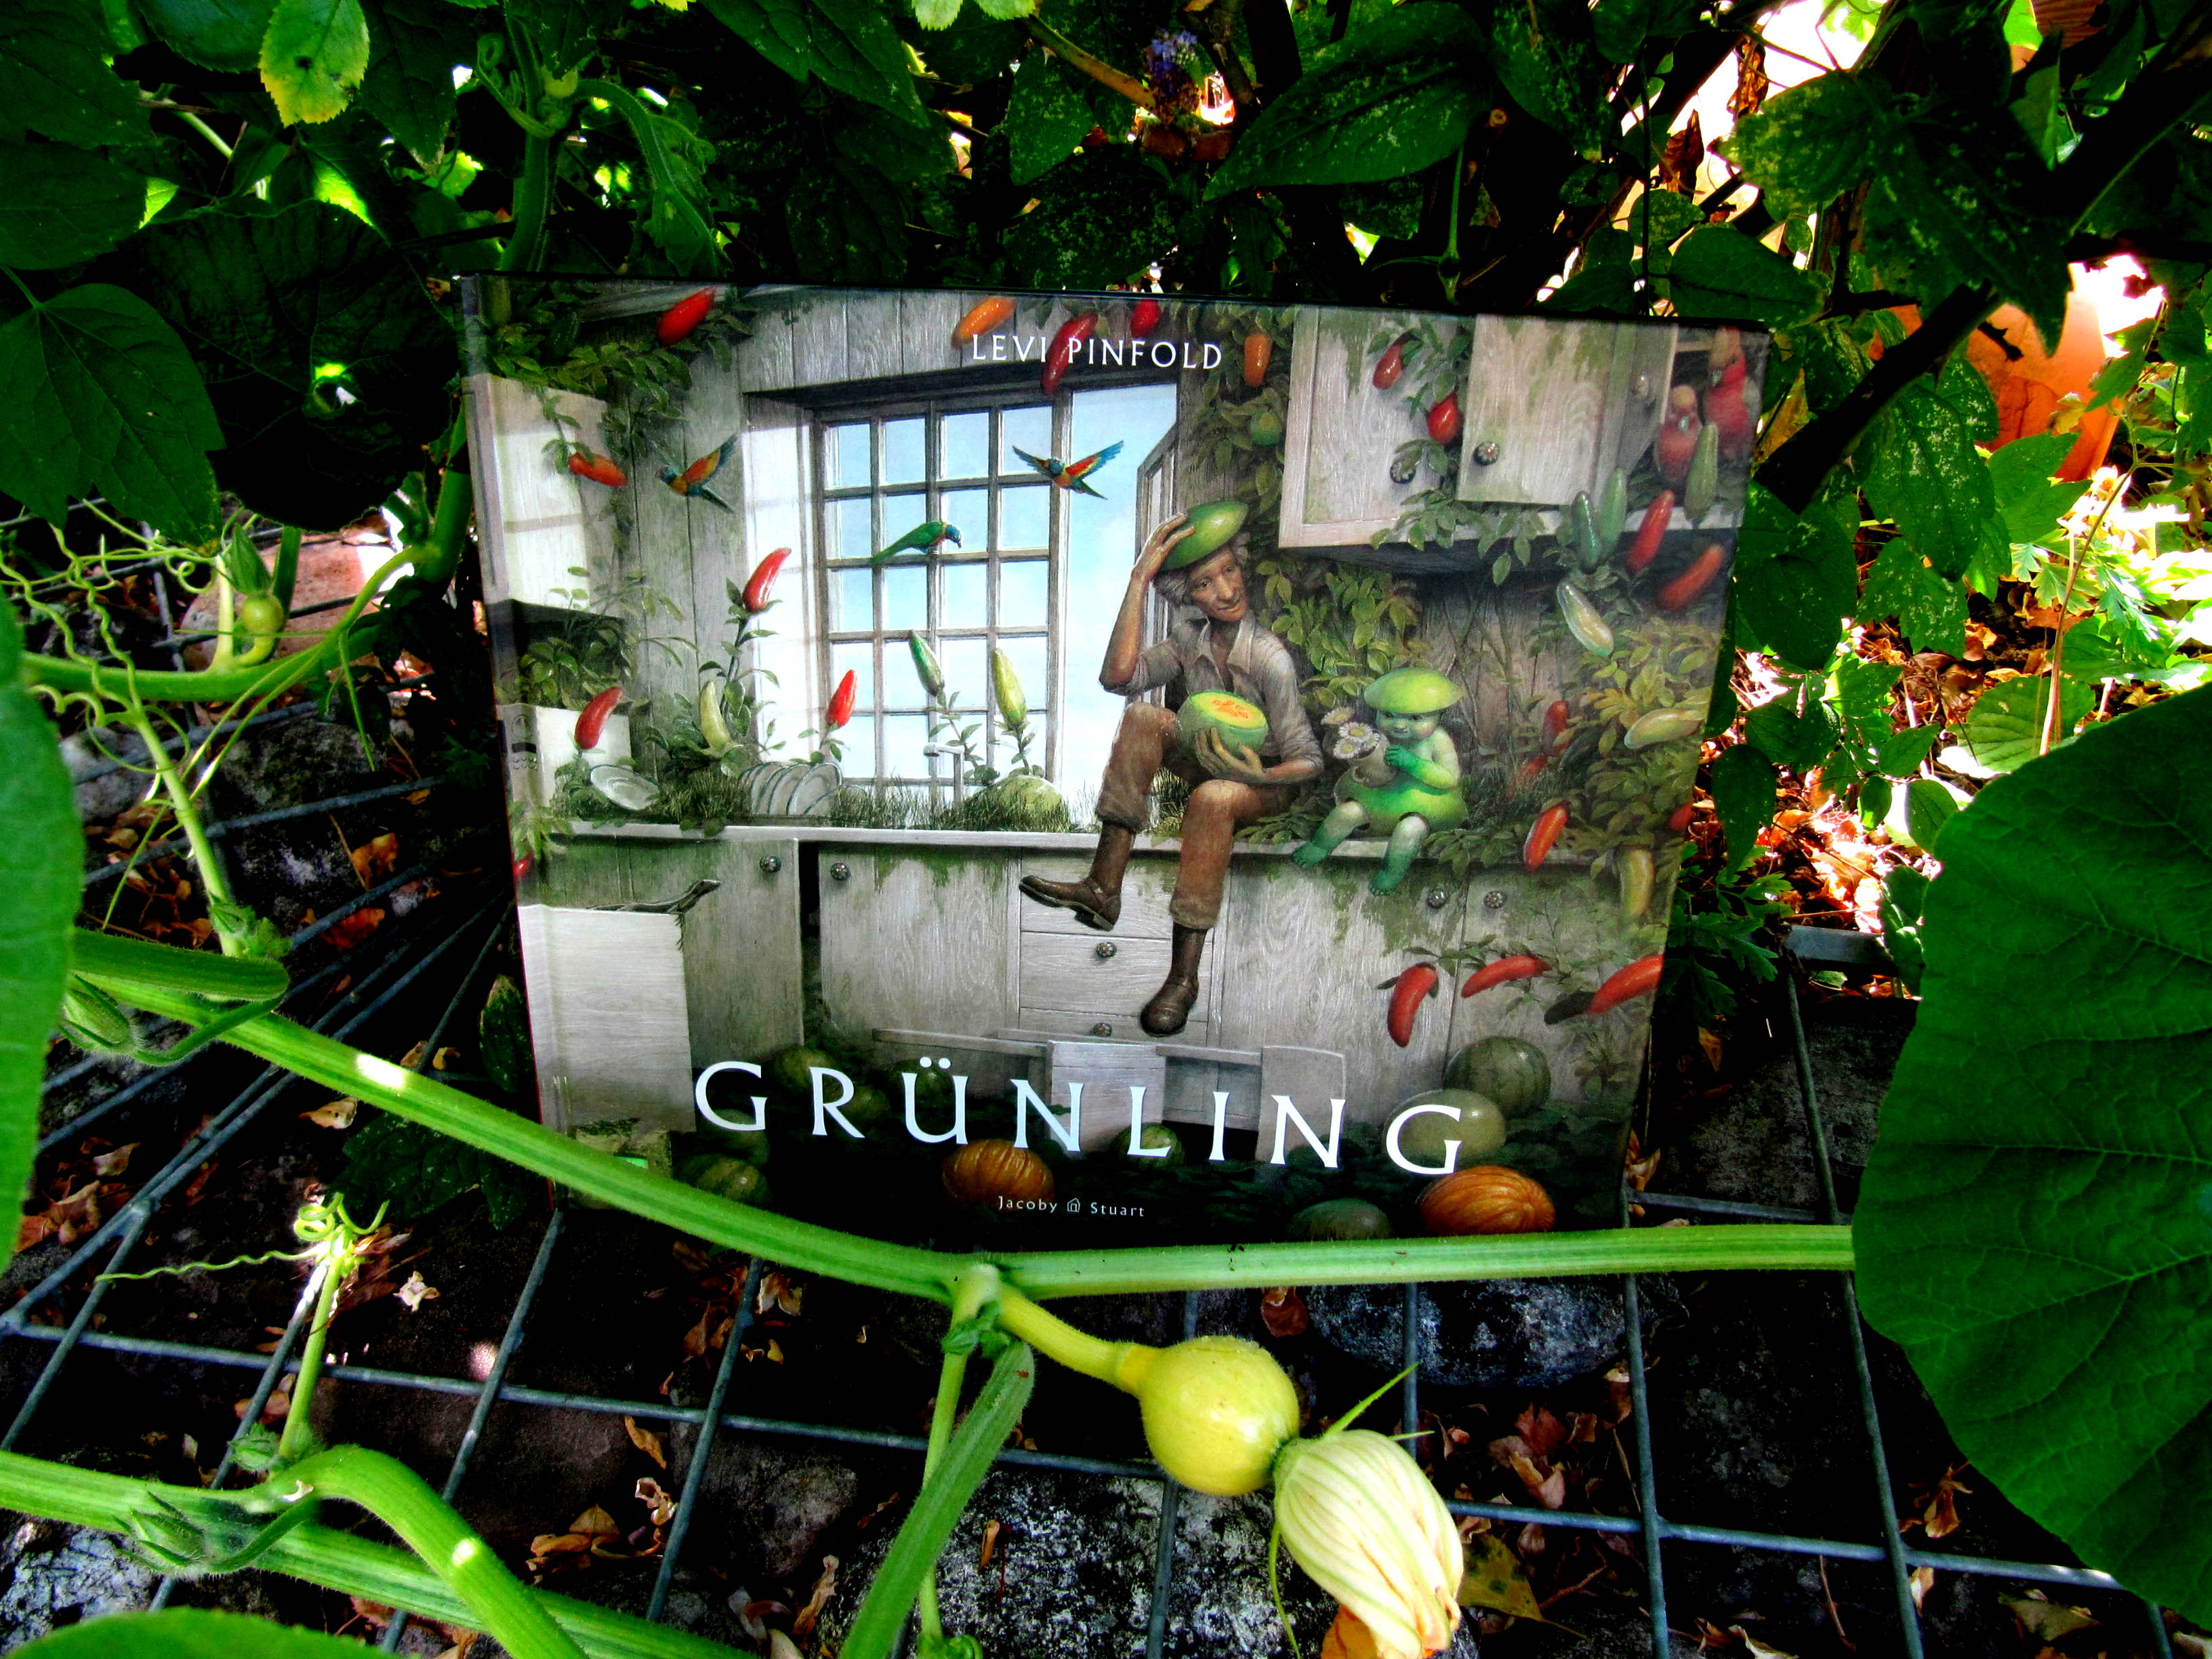 Grünling Book Cover